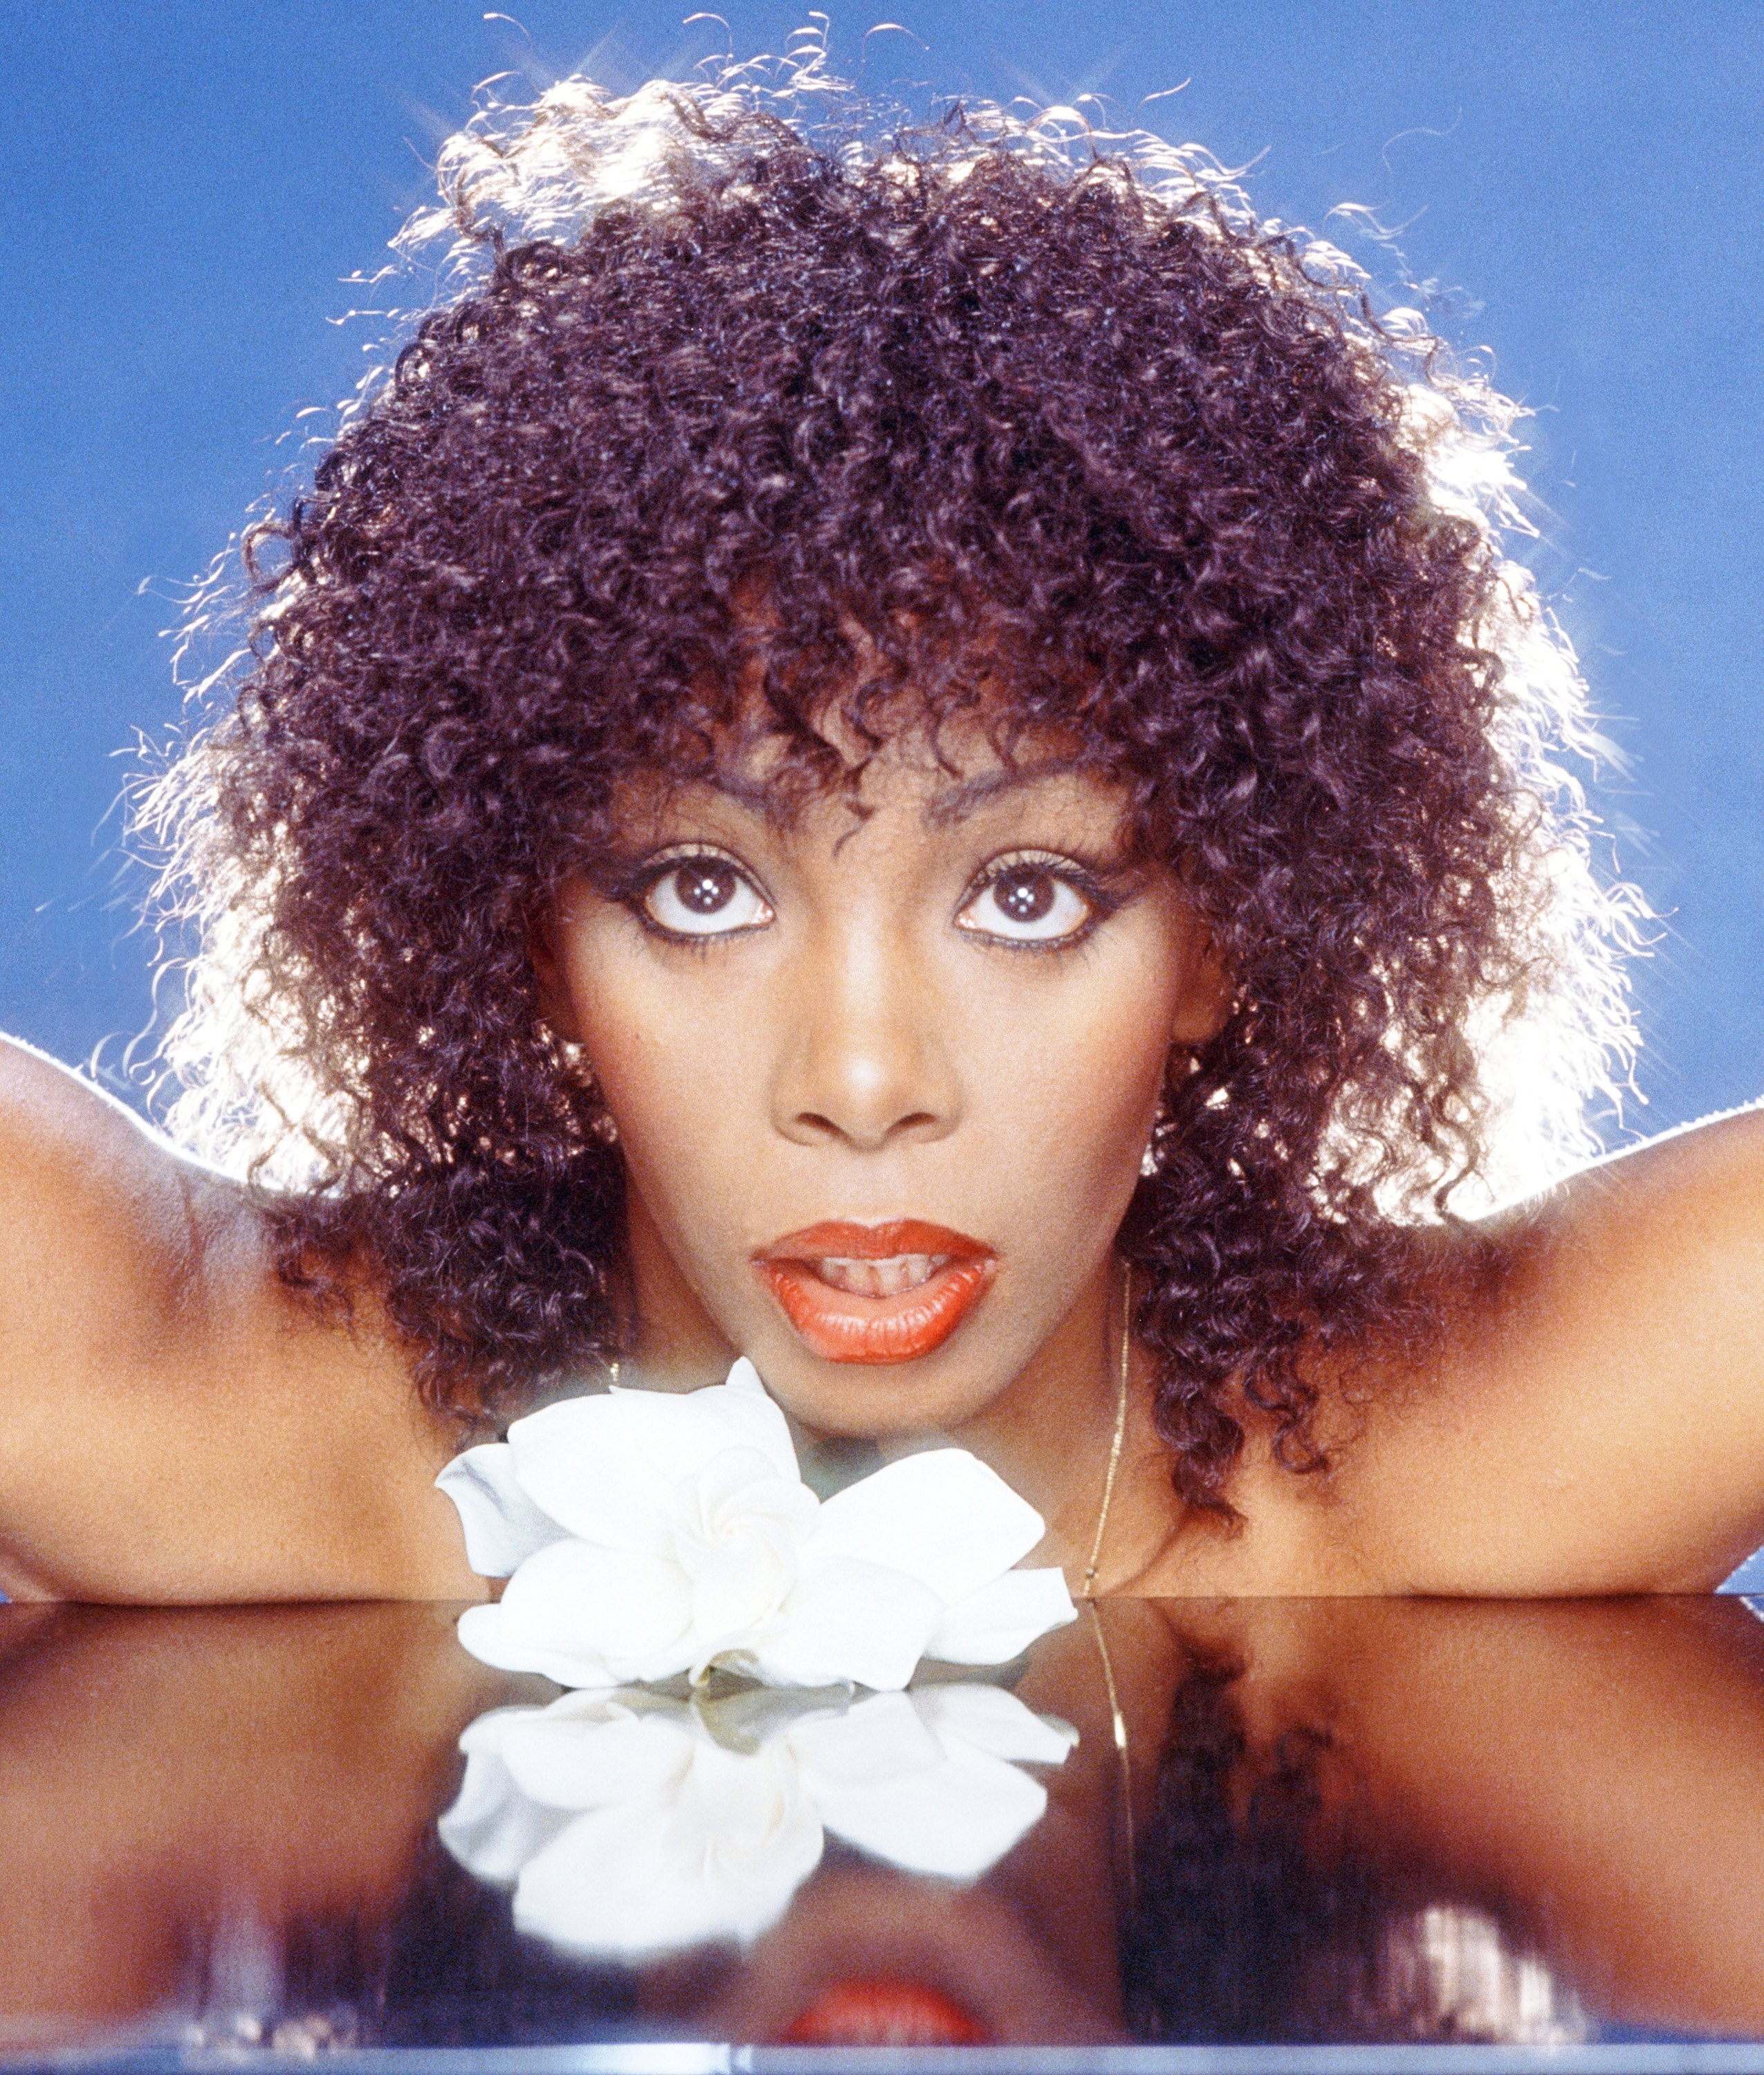 donna summer лучшие песниdonna summer – hot stuff, donna summer i feel love, donna summer – hot stuff скачать, donna summer слушать, donna summer i feel love скачать, donna summer скачать, donna summer on the radio, donna summer last dance, donna summer mp3, donna summer песни, donna summer last dance скачать, donna summer i remember yesterday, donna summer википедия, donna summer 2012, donna summer discography, donna summer лучшие песни, donna summer i feel love слушать, donna summer i will survive, donna summer youtube, donna summer the wanderer